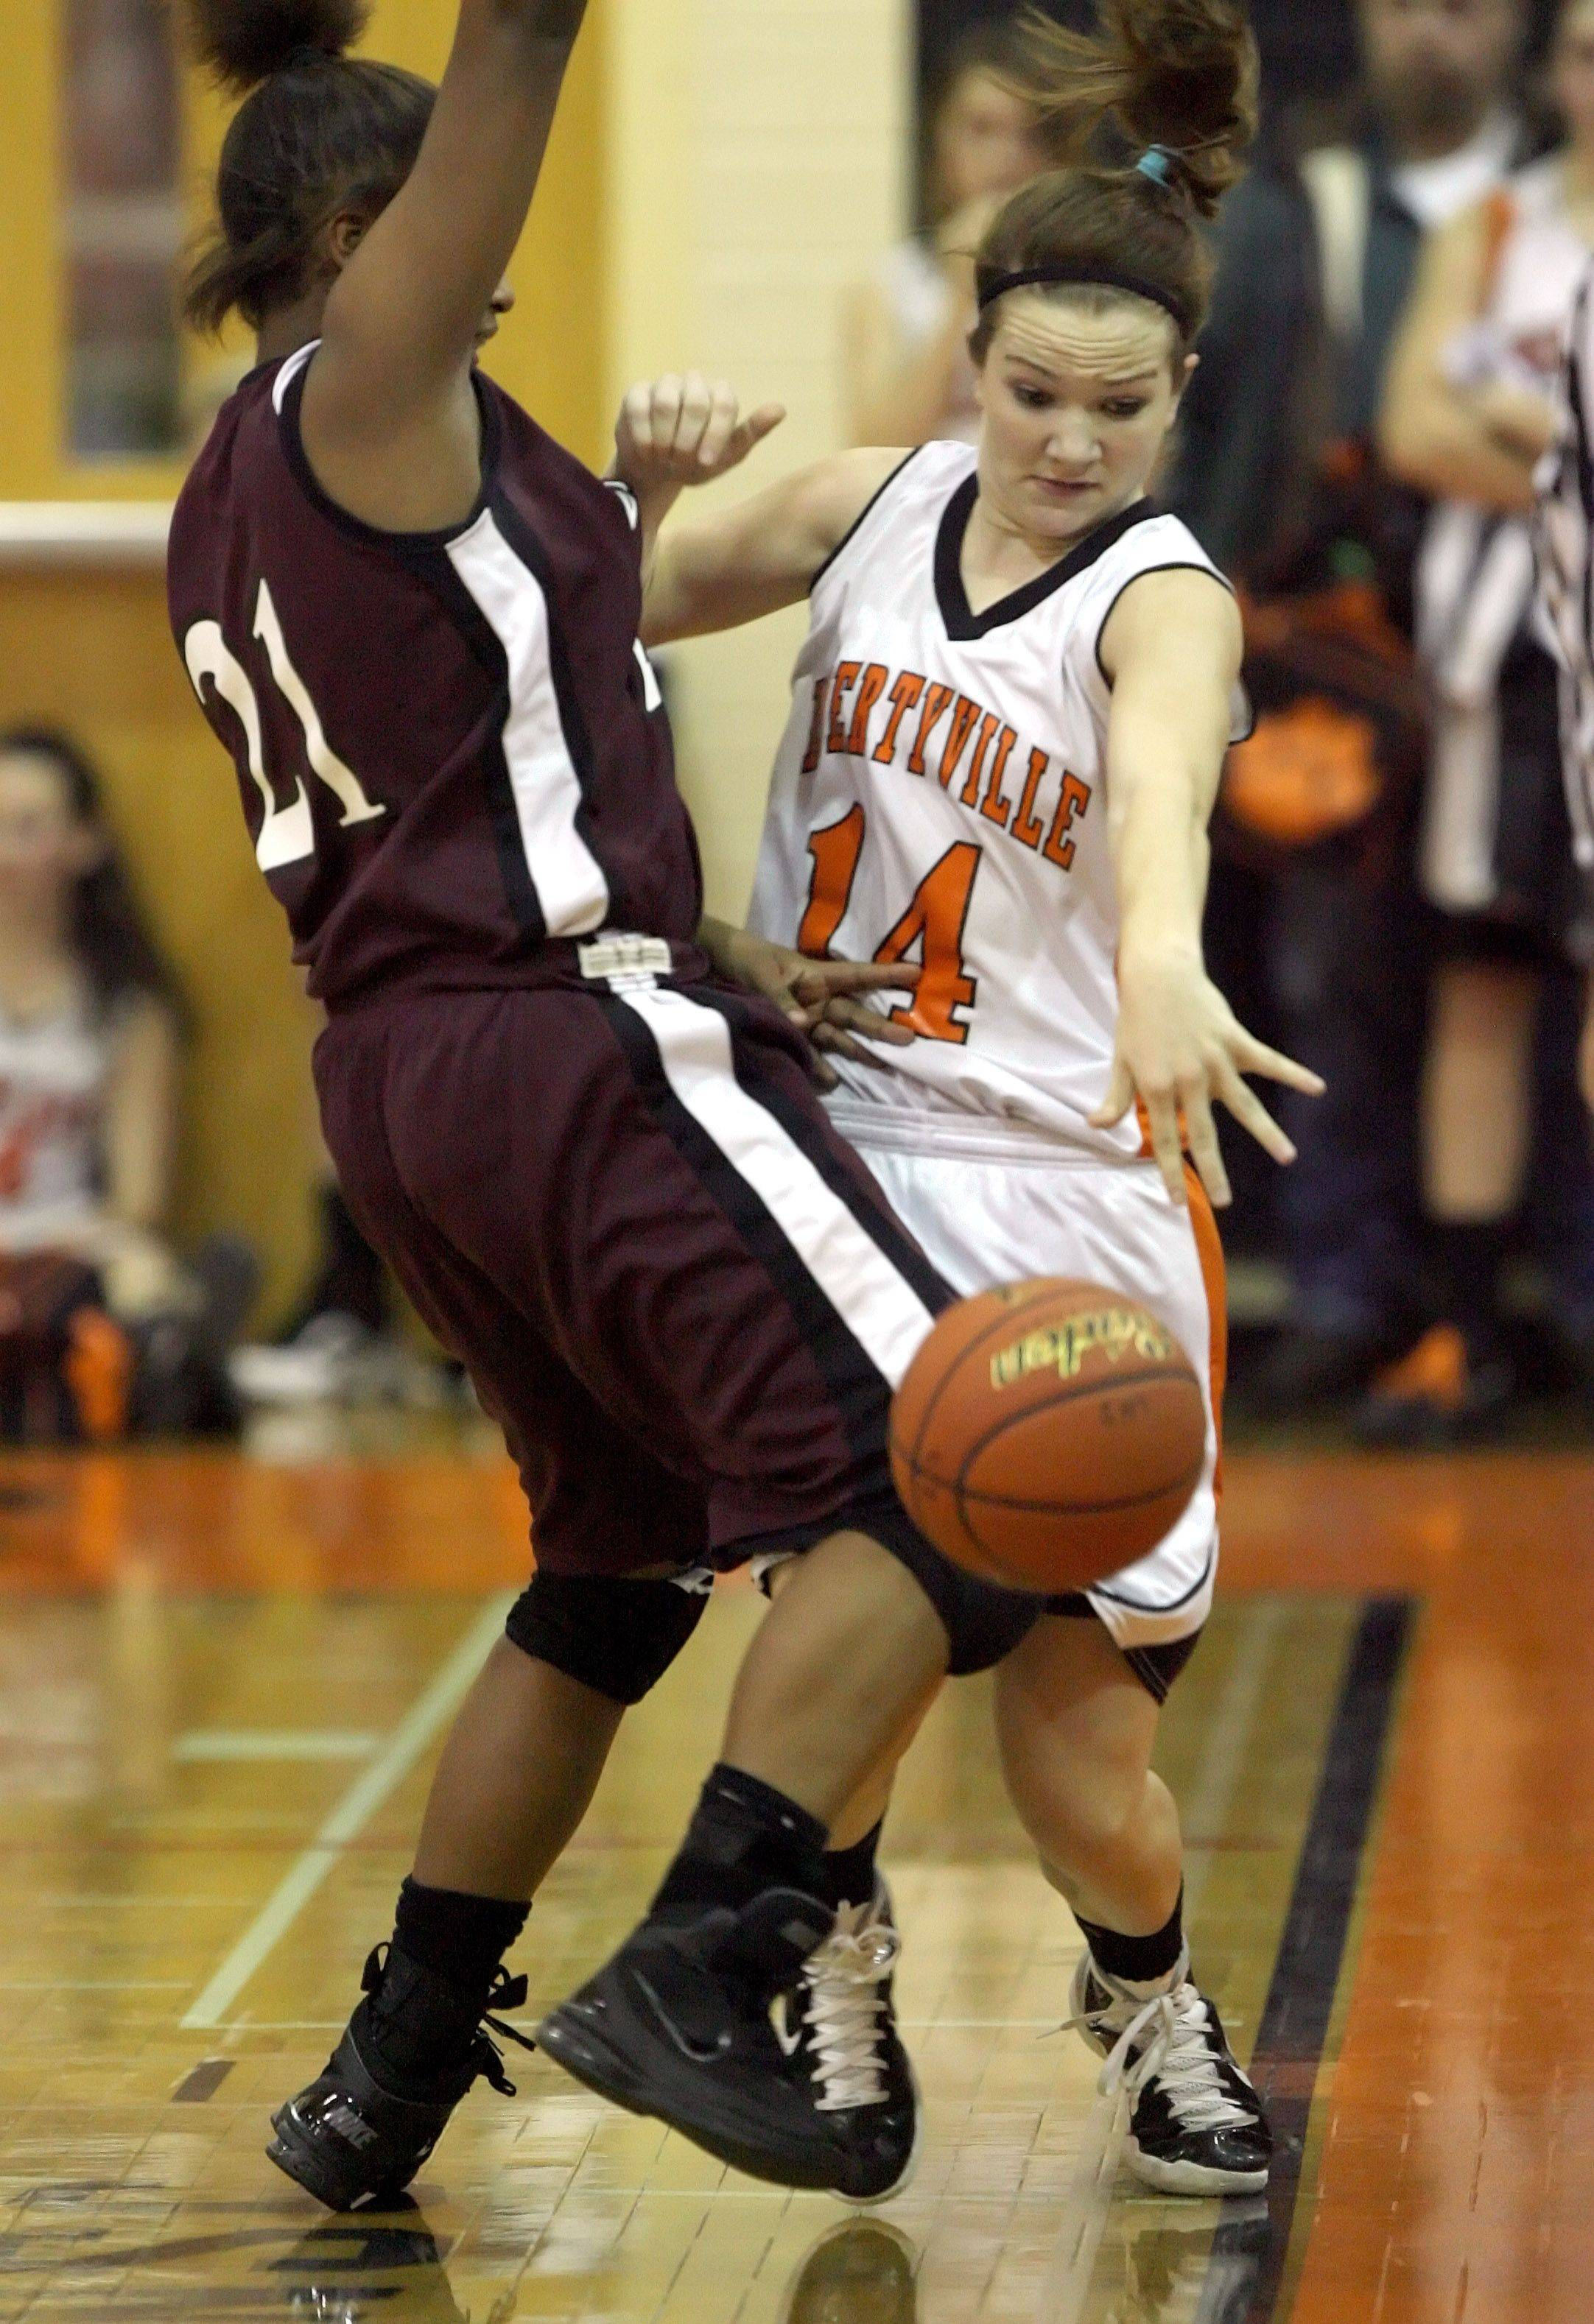 Libertyville's Savanna Tress, right, tries to dribble past and Zion's Samantha Rodriguez .